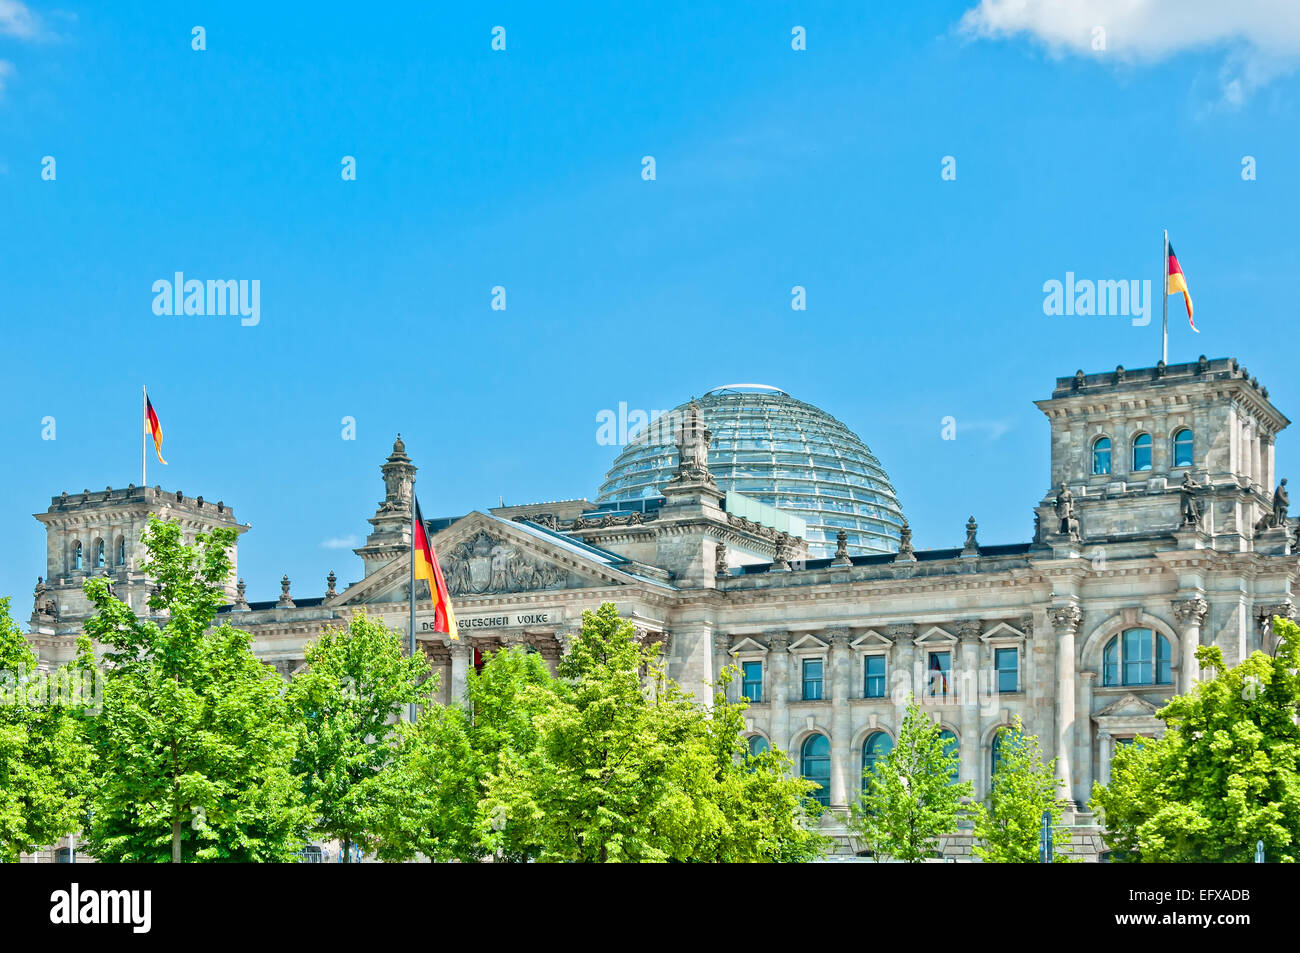 Berlin, Germany - June 8, 2013: German Parliament or Bundestag with national flag in Berlin, Germany. The building - Stock Image